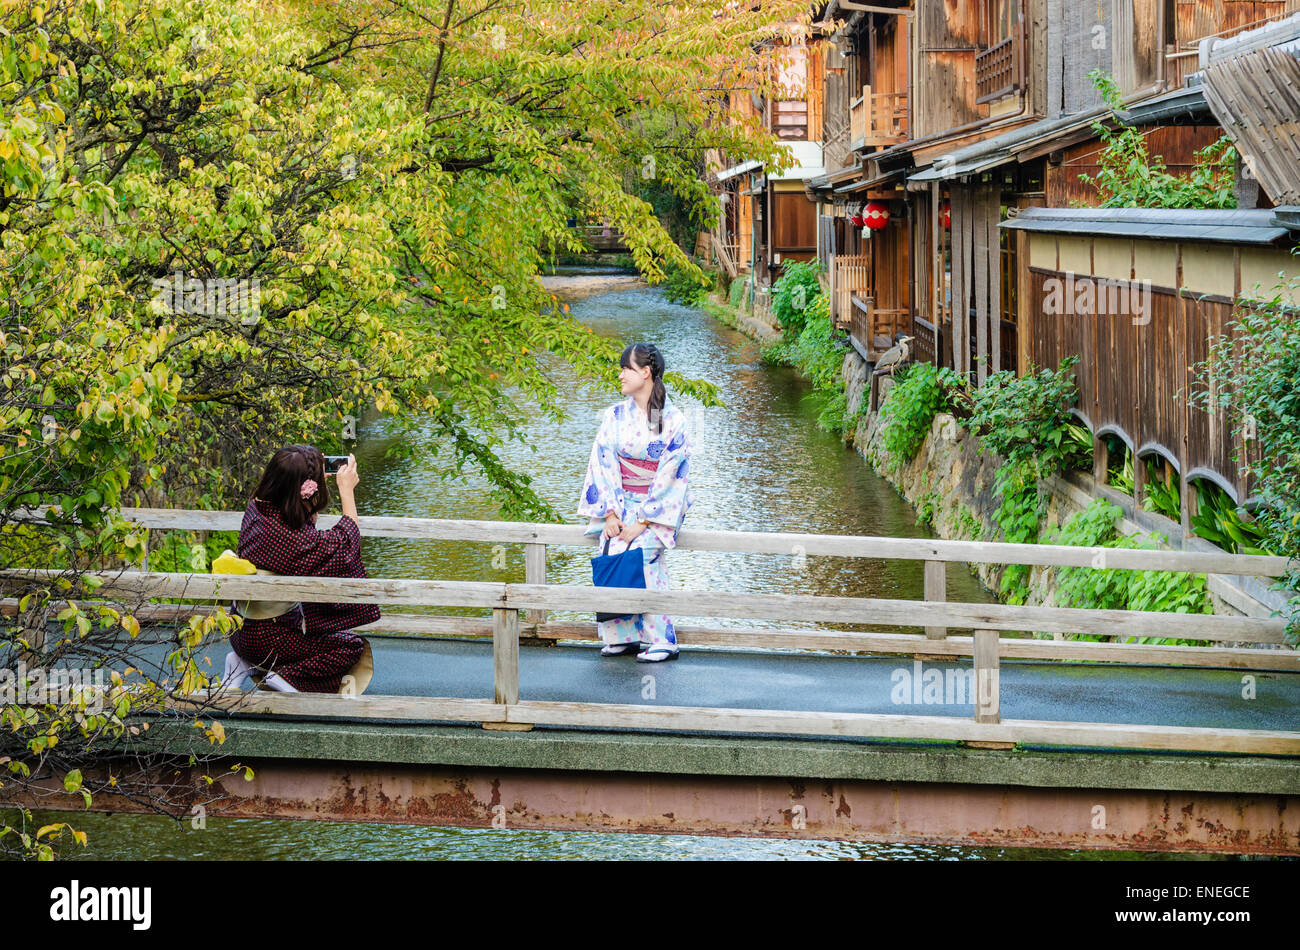 Traditionally dressed Japanese women taking photos of each other in the Shirakawa Area of Gion, Kyoto, Japan - Stock Image